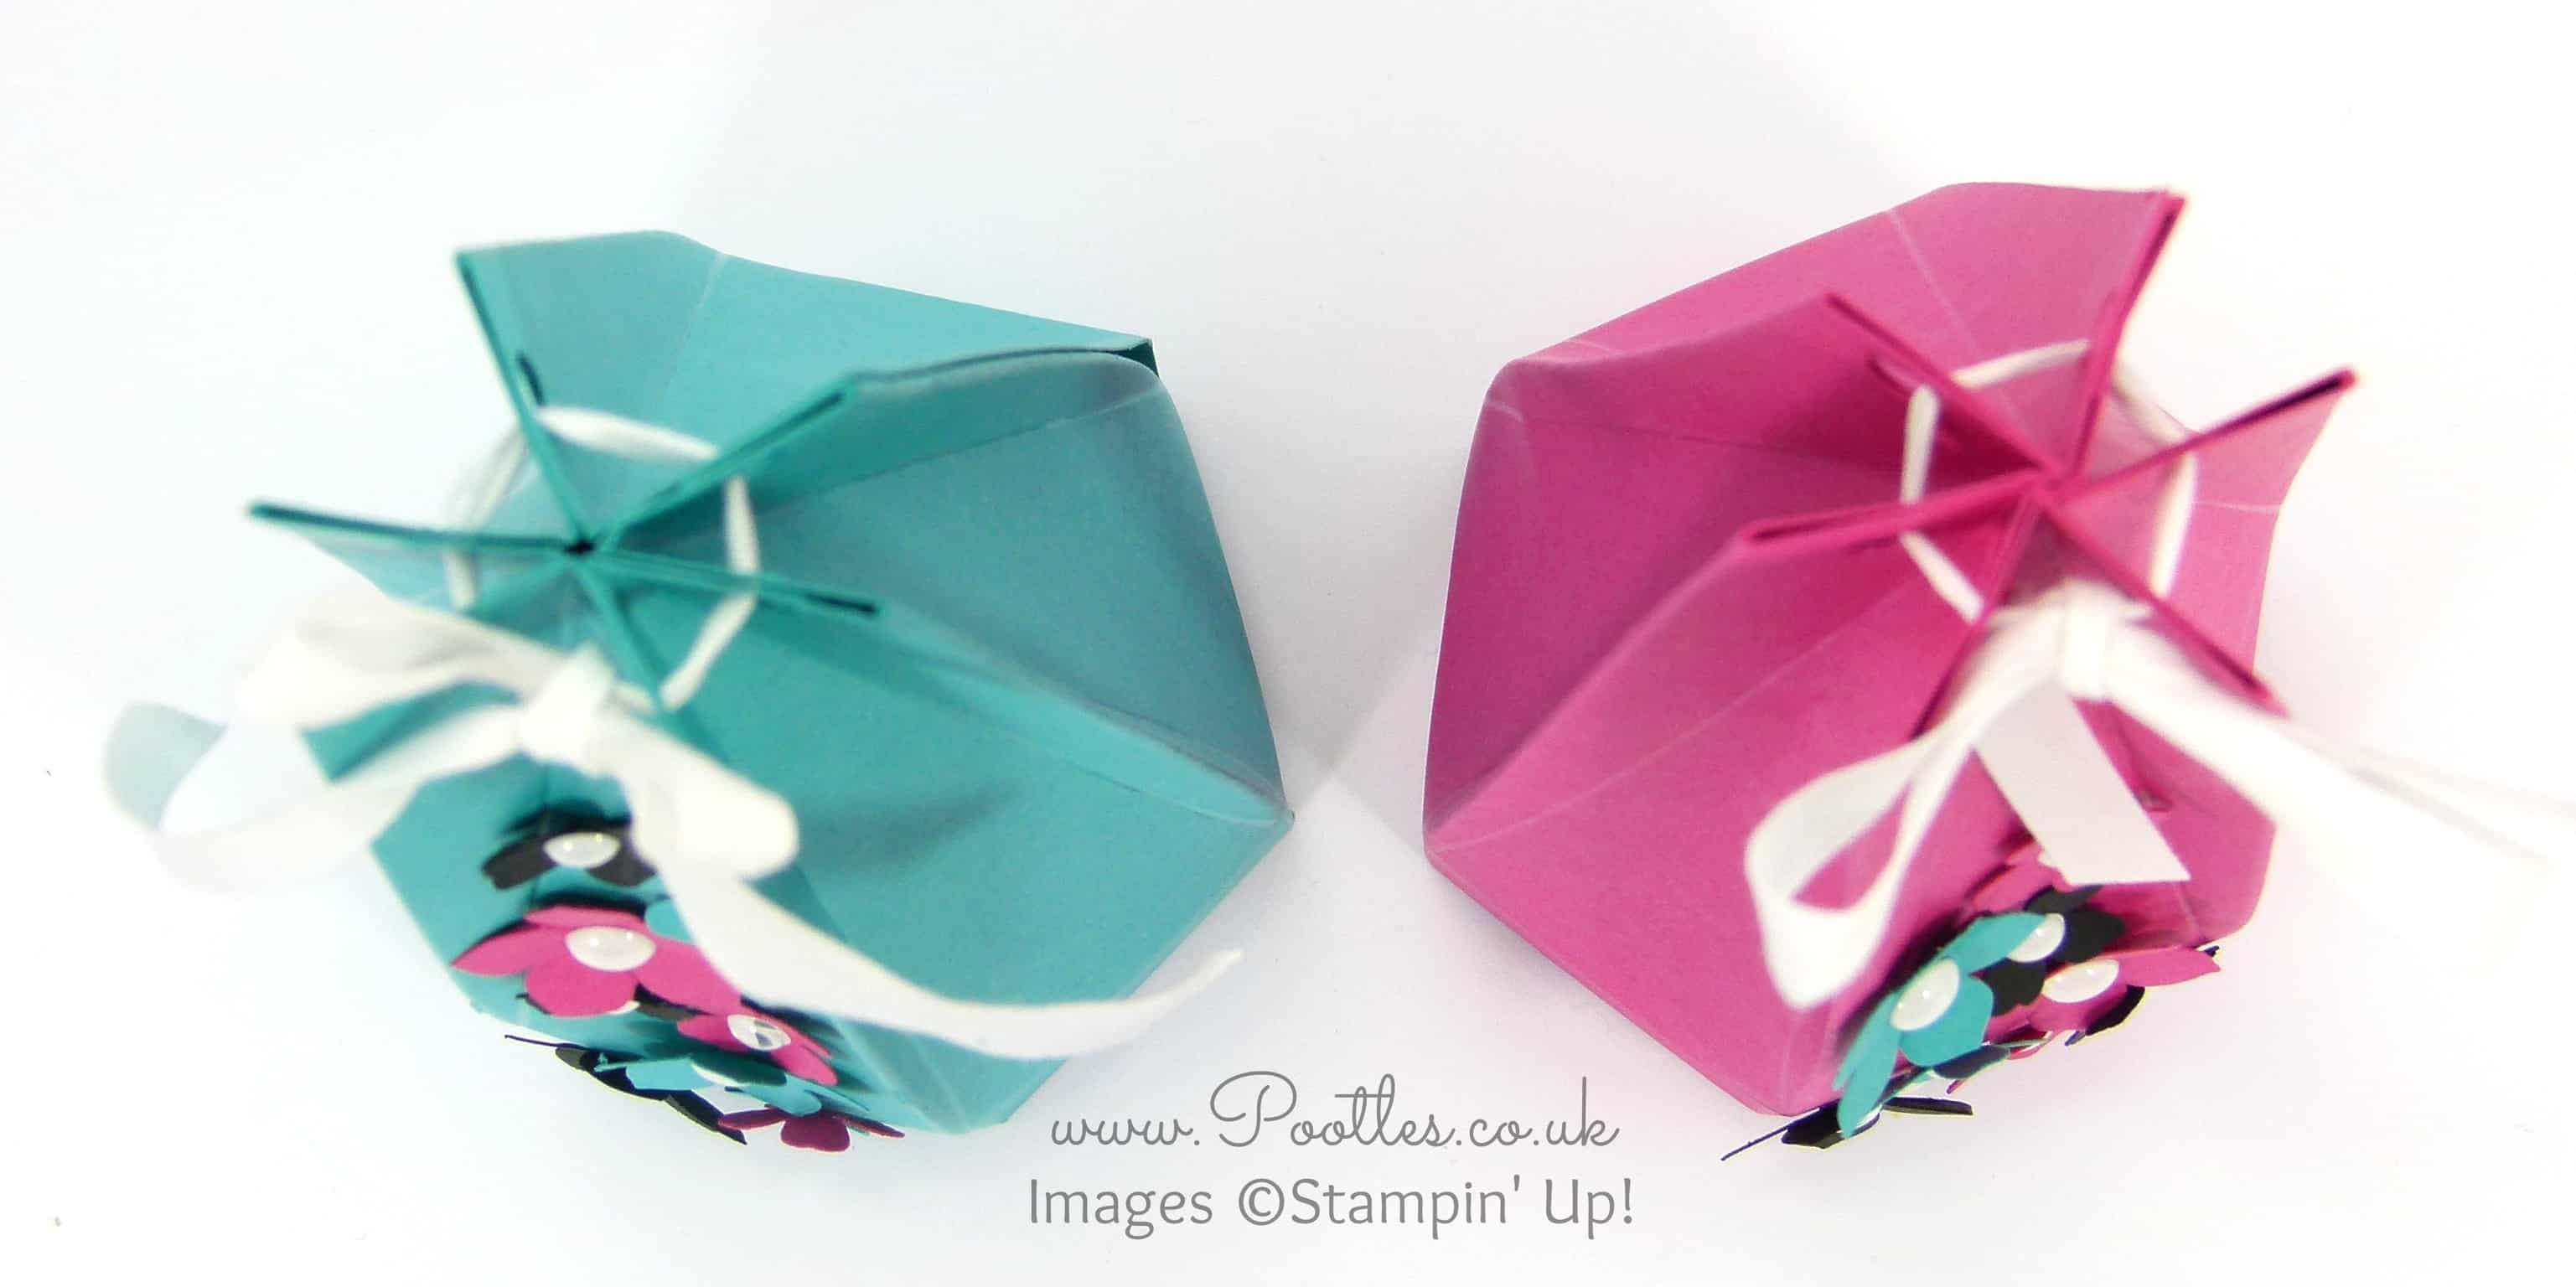 The Tall Skinny Hexagonal Box Tutorial